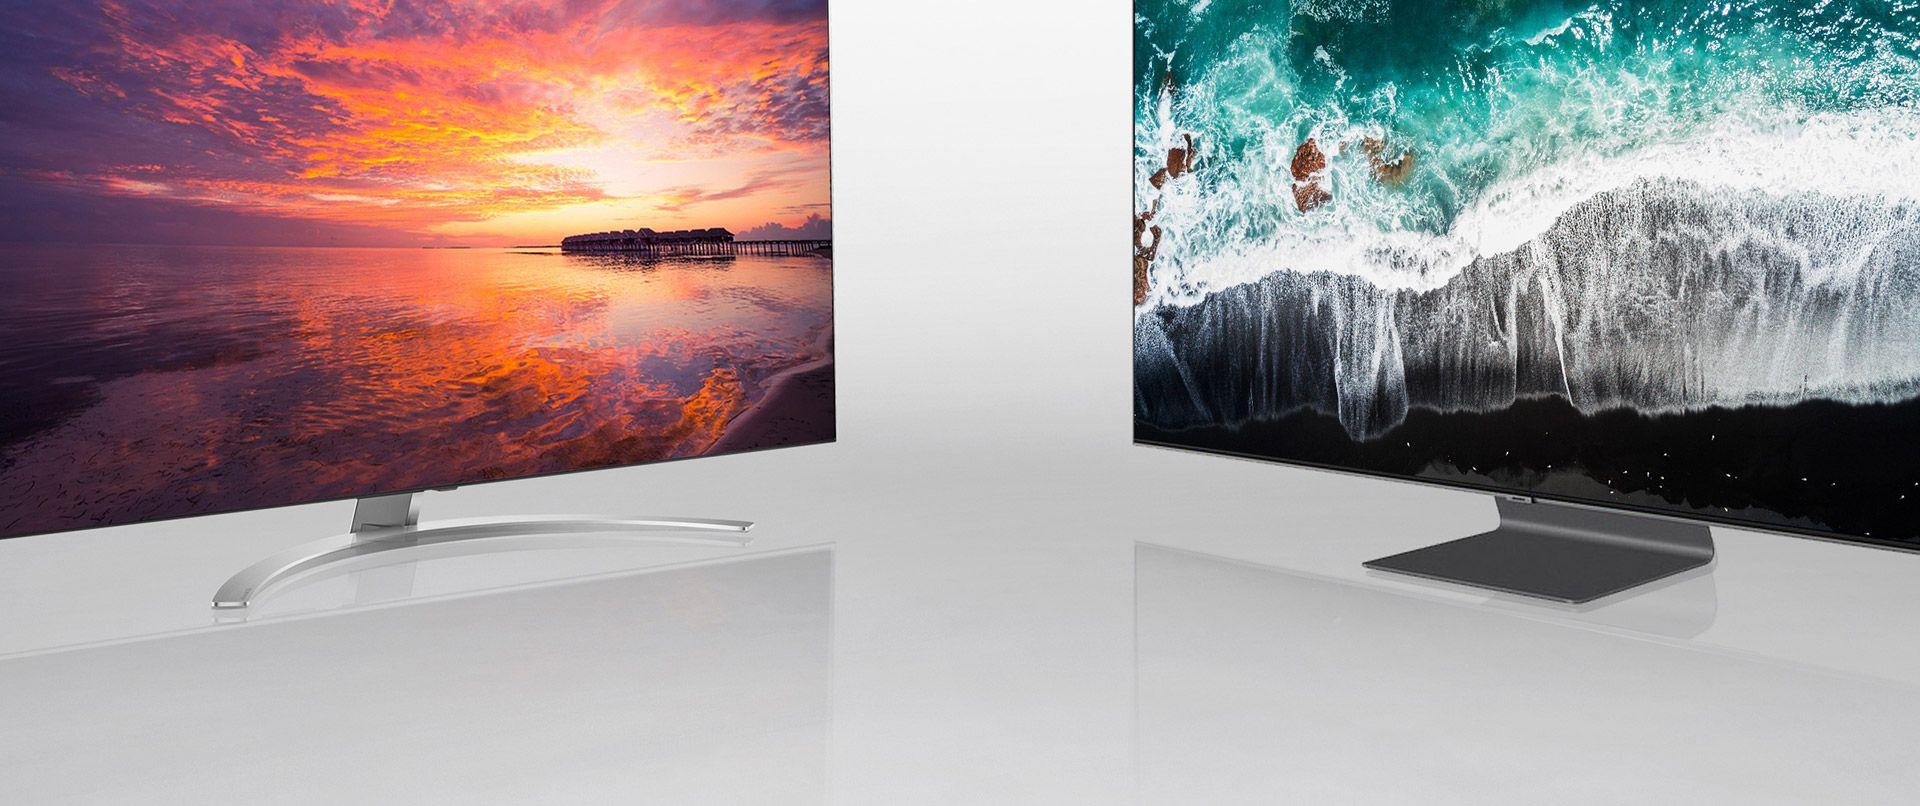 Lg Nanocell Tv With Images